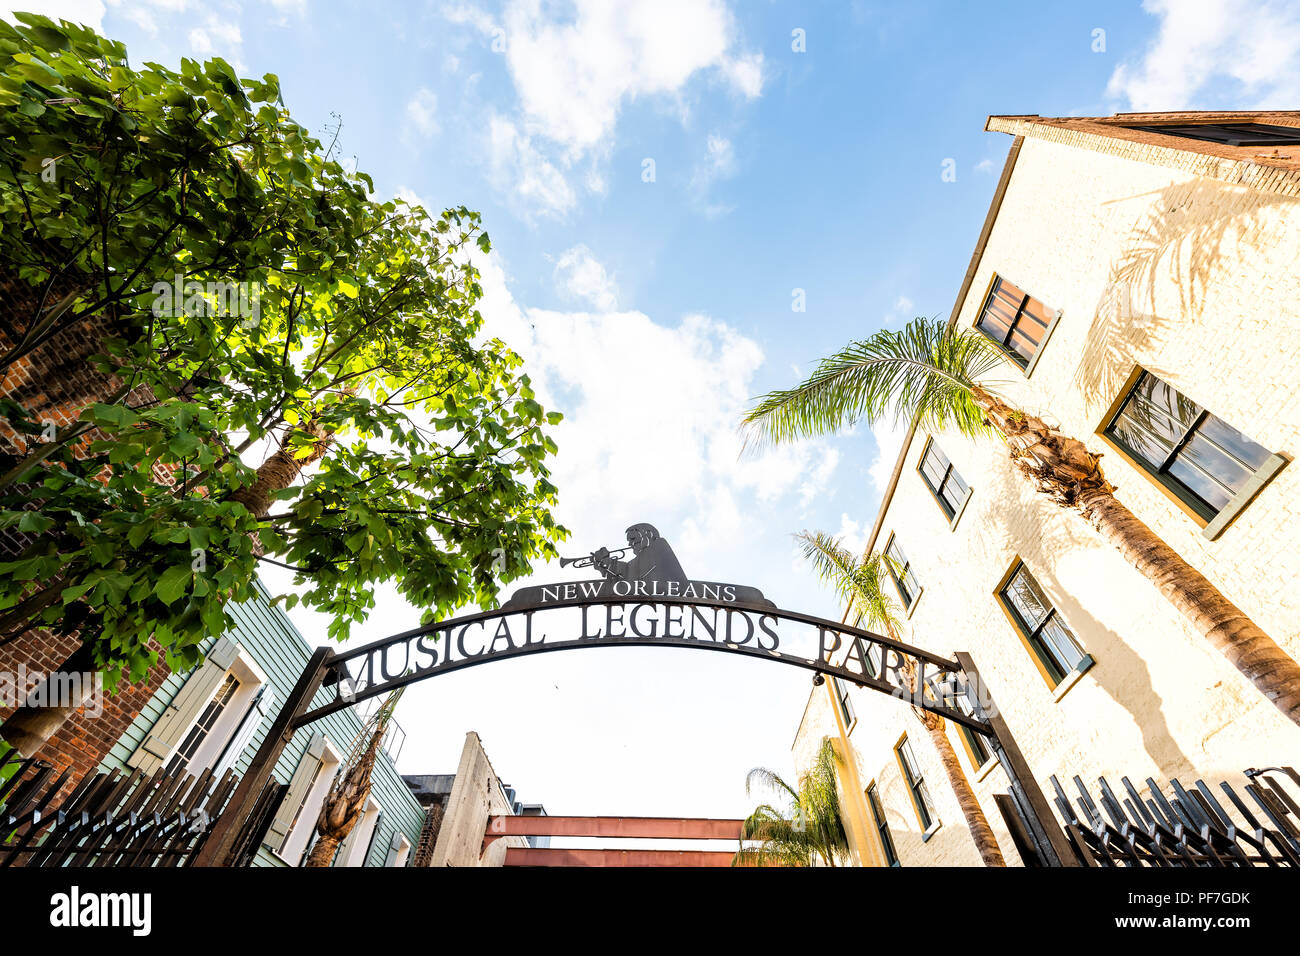 New Orleans, USA - April 23, 2018: Famous jazz music players, the three Greats, on Bourbon Street, French Quarter, Musical Legends Park sign closeup,  - Stock Image